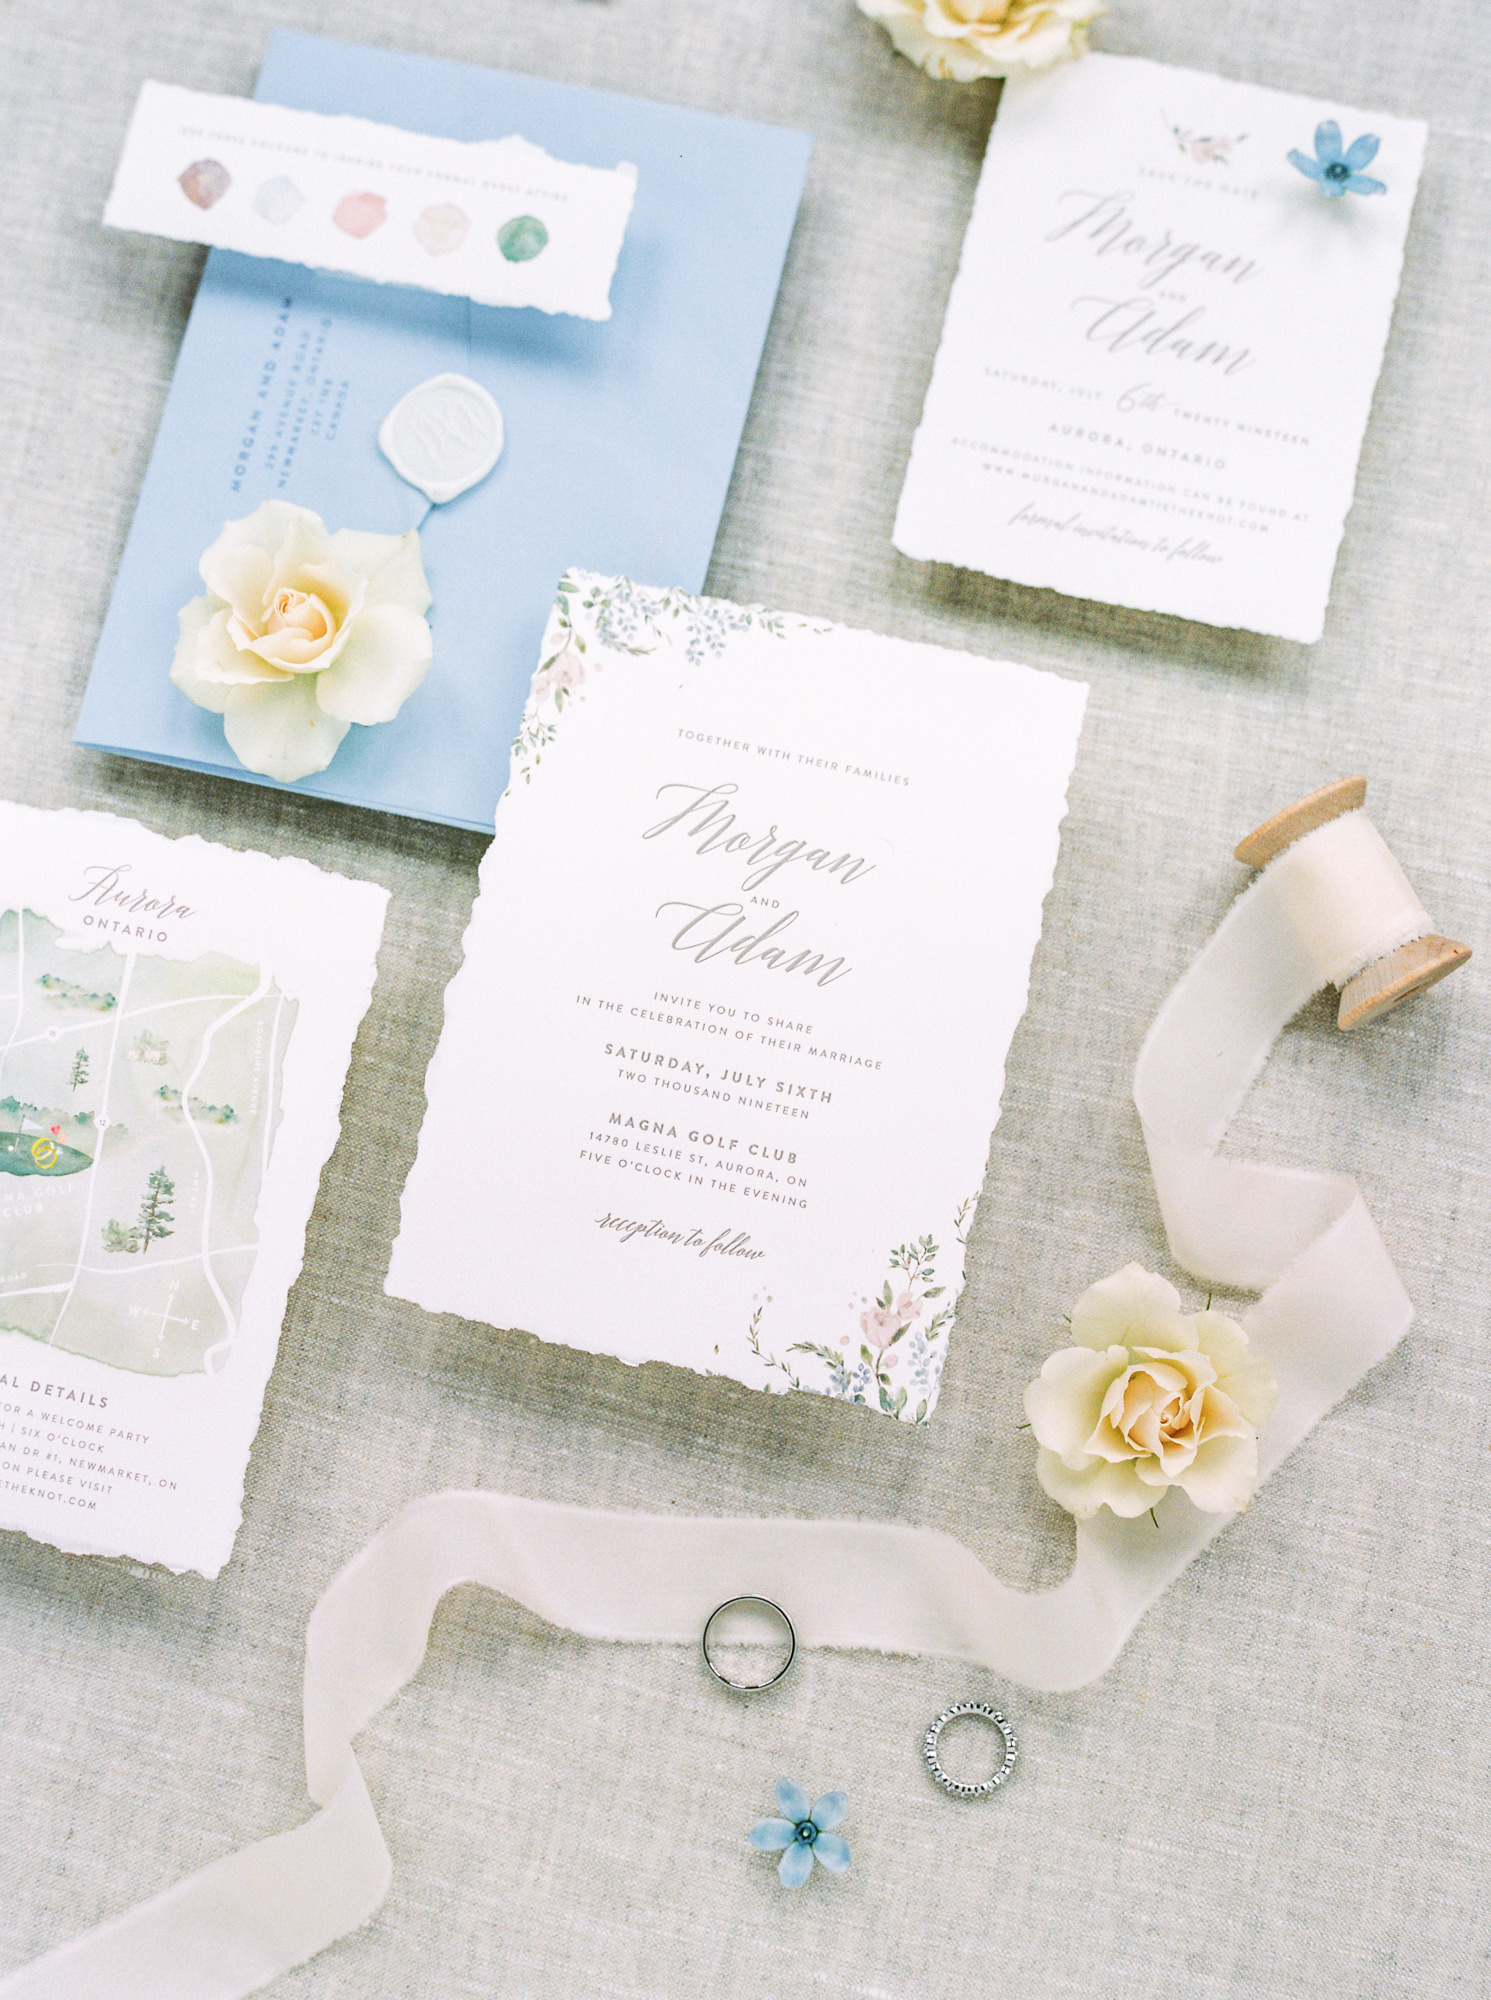 blue and white stationery suit with floral motif design